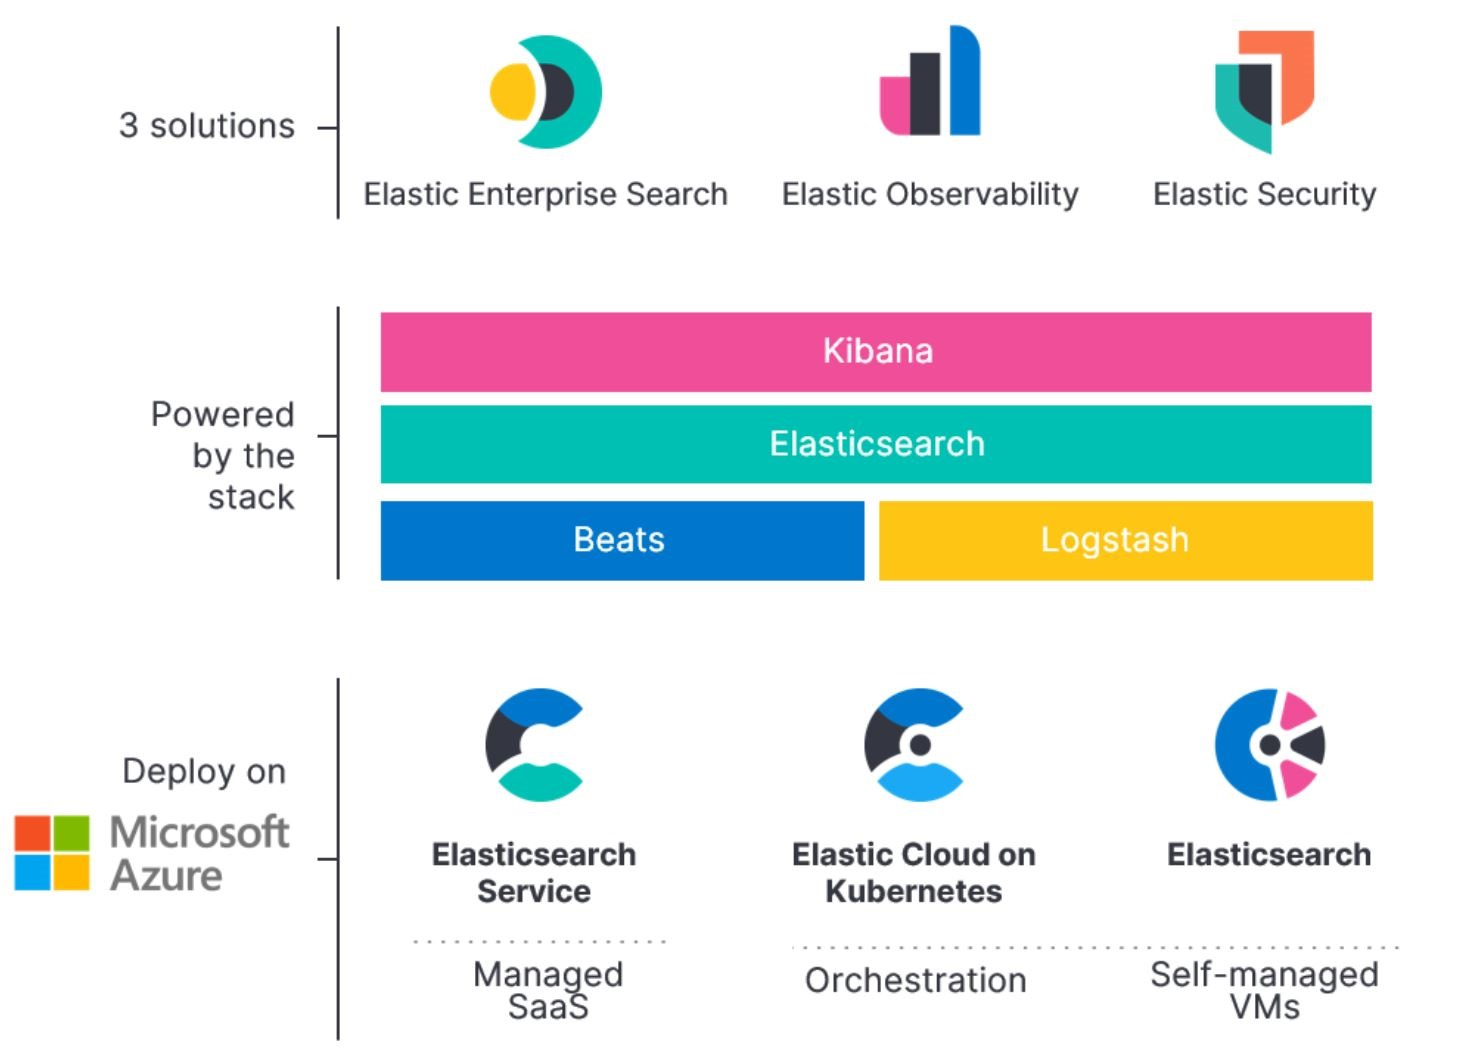 Manufacturing, Healthcare, Financial service industry and online ecommerce industries are all using Elastic on Azure to fulfill their search and observability needs.